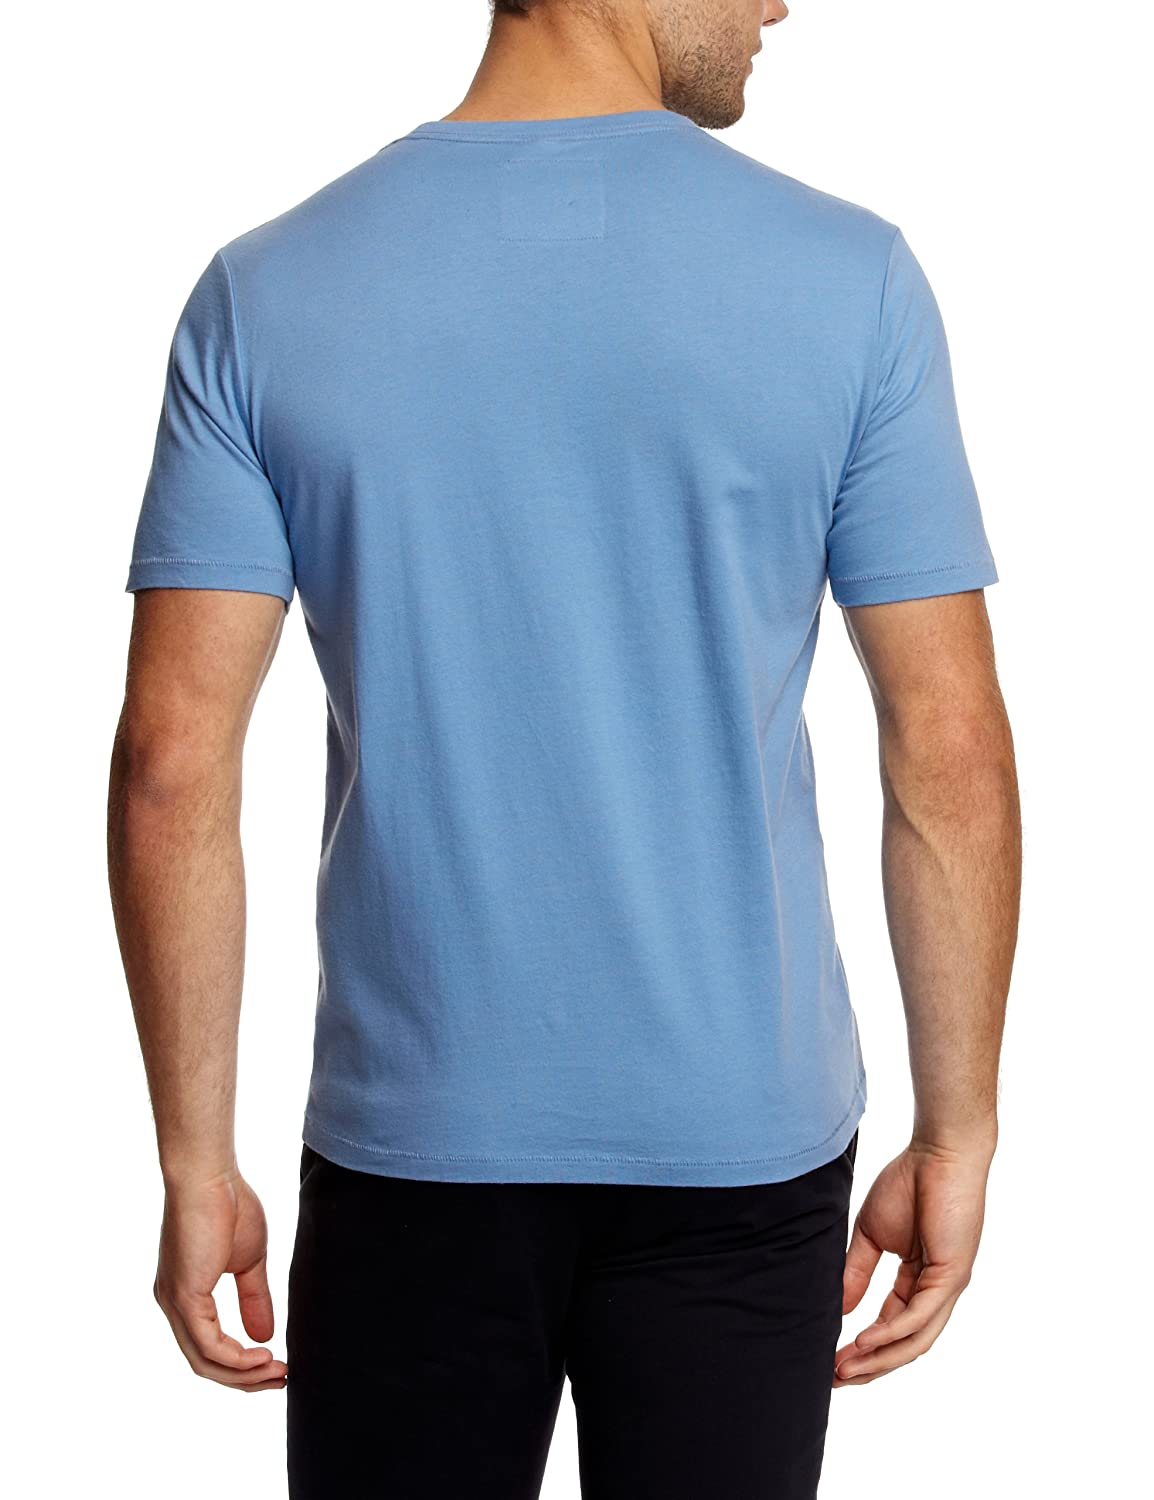 Dockers Herren T-Shirt Slim Fit Graphic Tee 20194, Gr. 48/50 (M), Blau (Ascan  Blue 0012): Amazon.de: Bekleidung